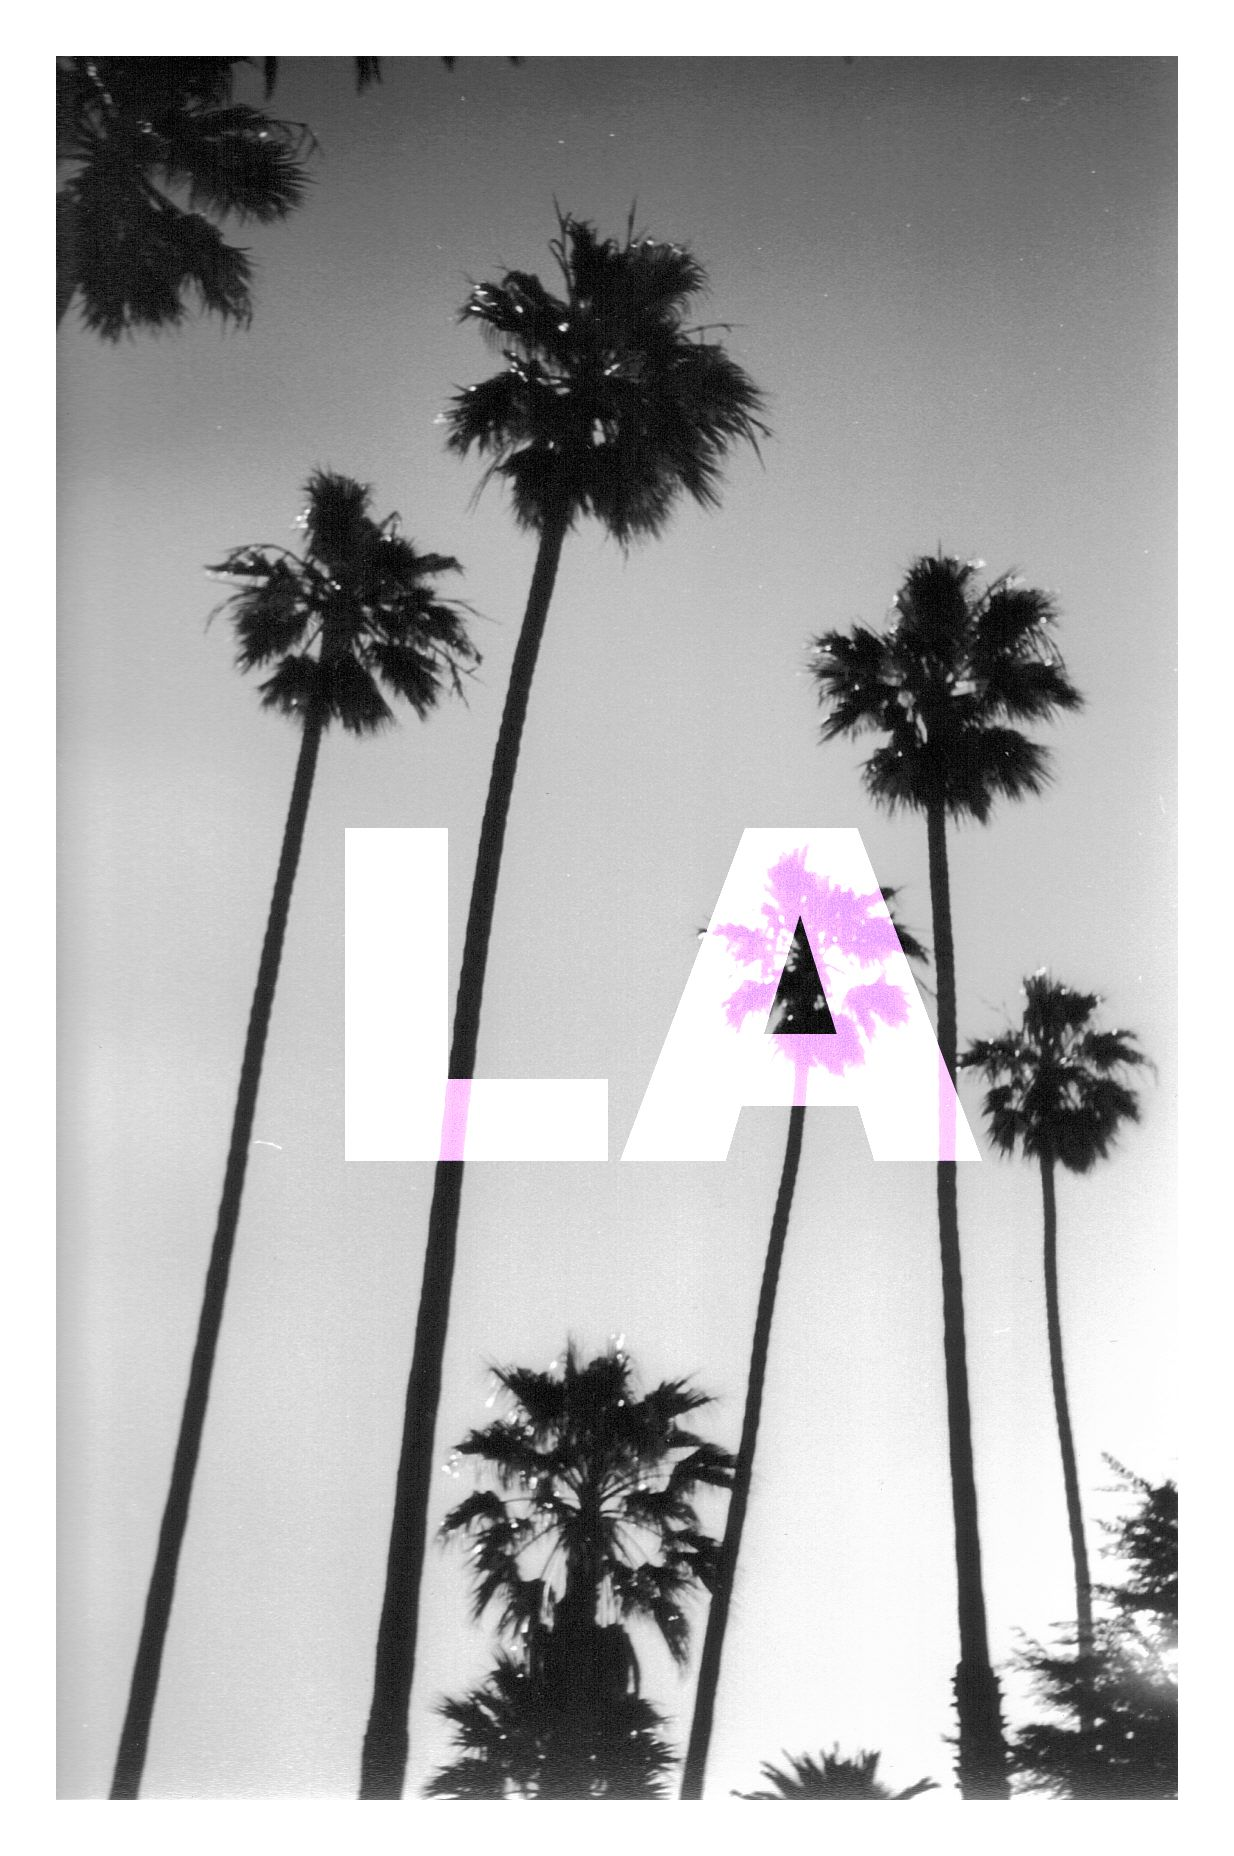 los angeles poster palm trees posters road trip creative our